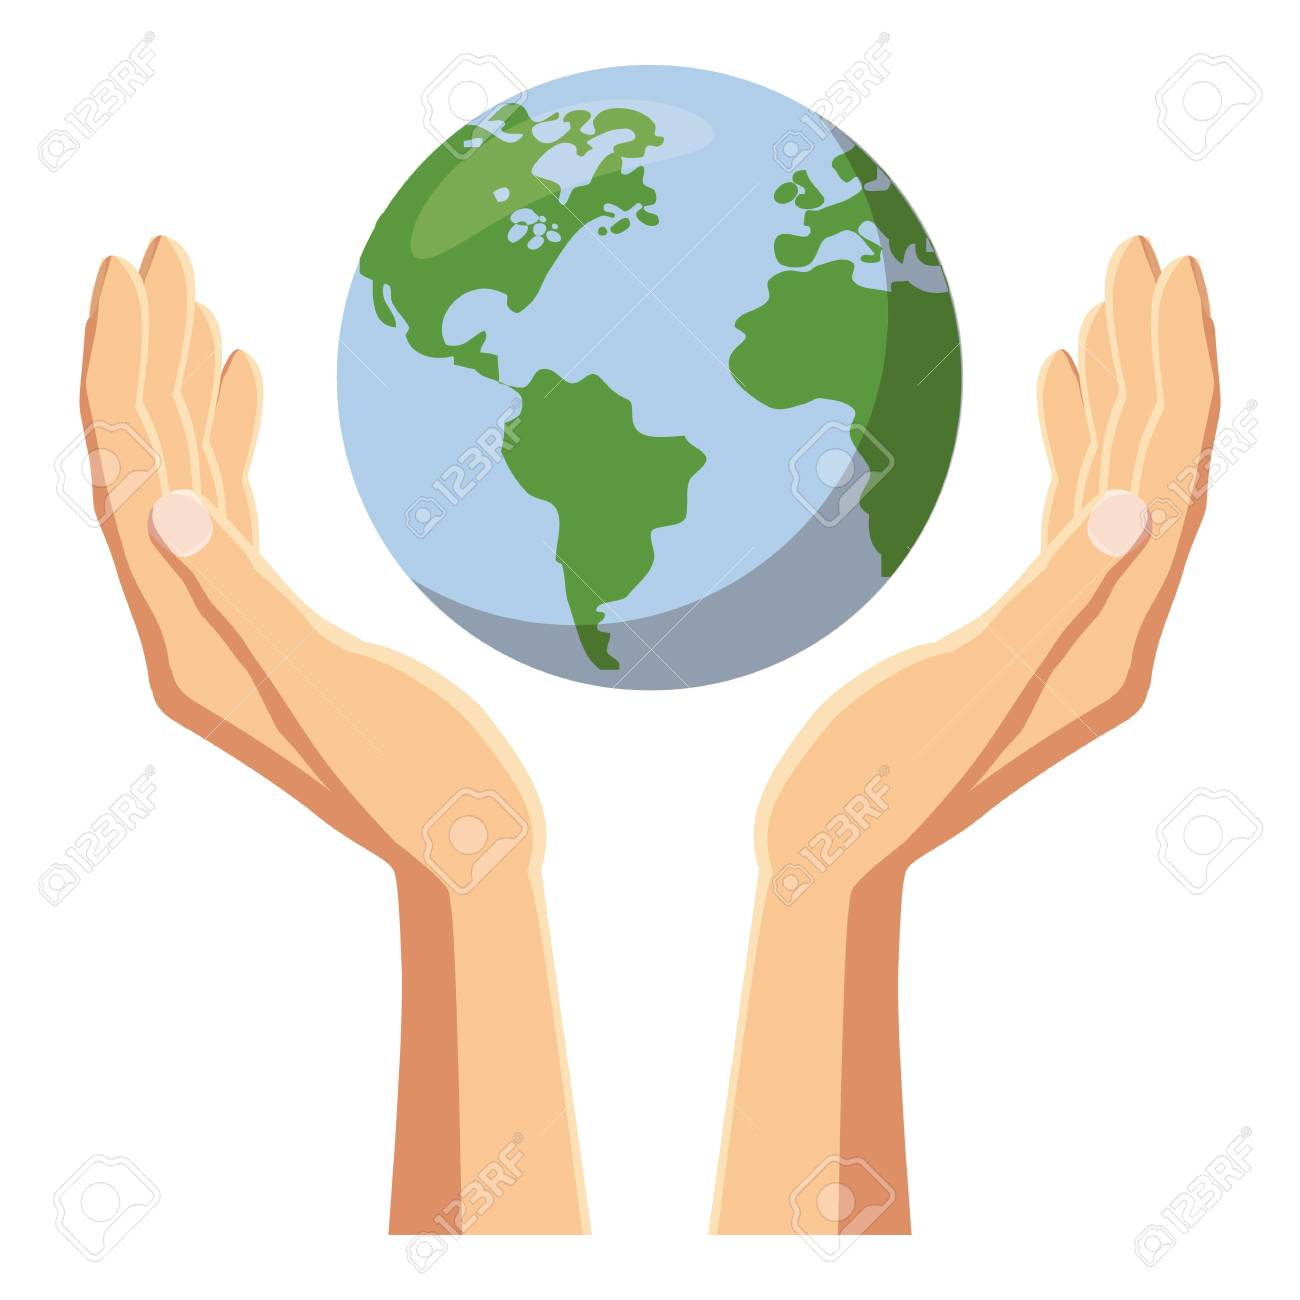 Hands holding globe earth icon, cartoon style.